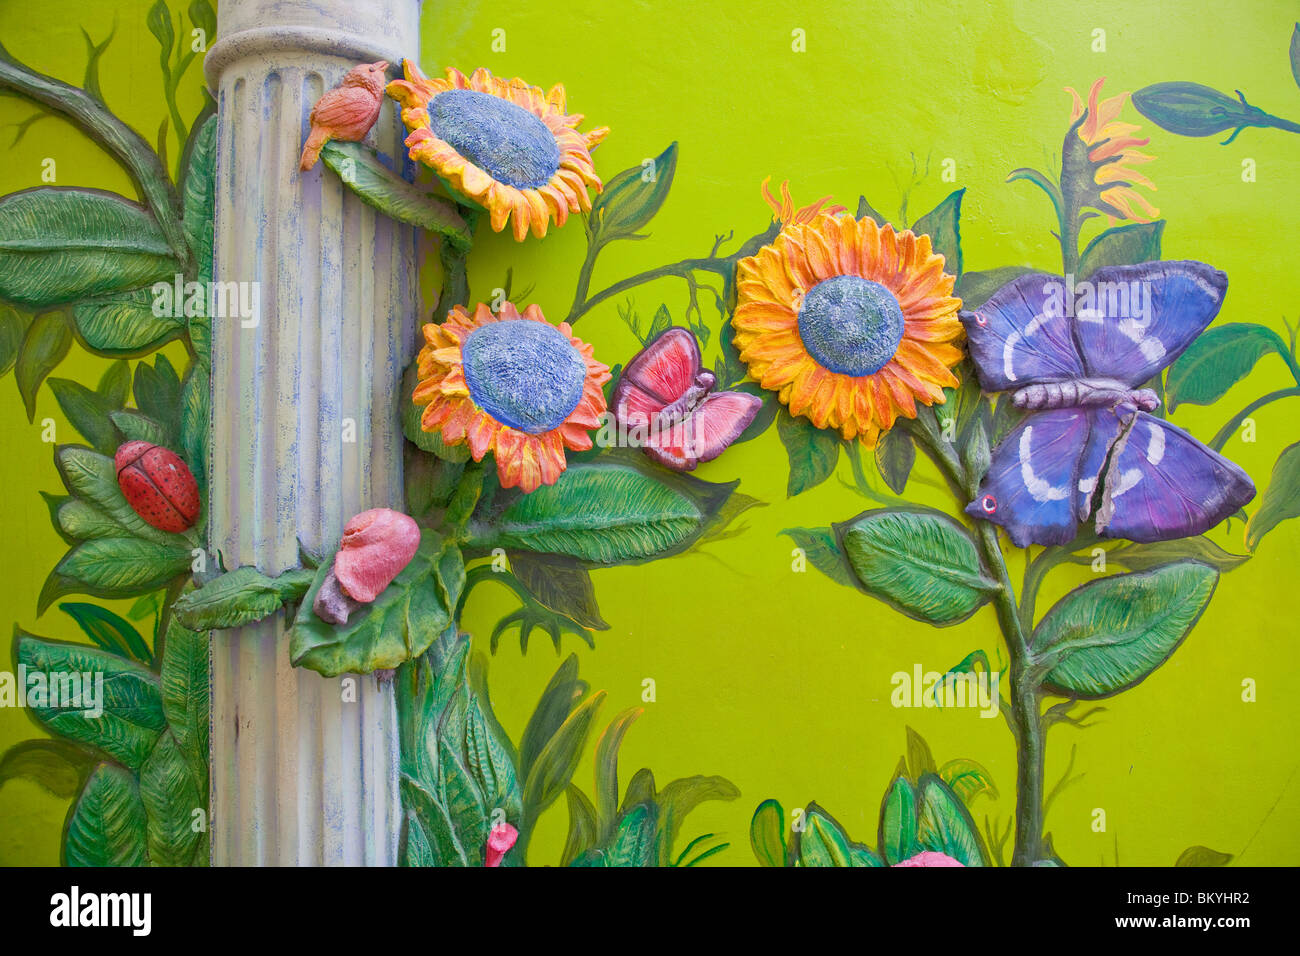 Decorative street art and murals on the sides of buildings in Willemstad, Curacao, Netherland Antilles. - Stock Image